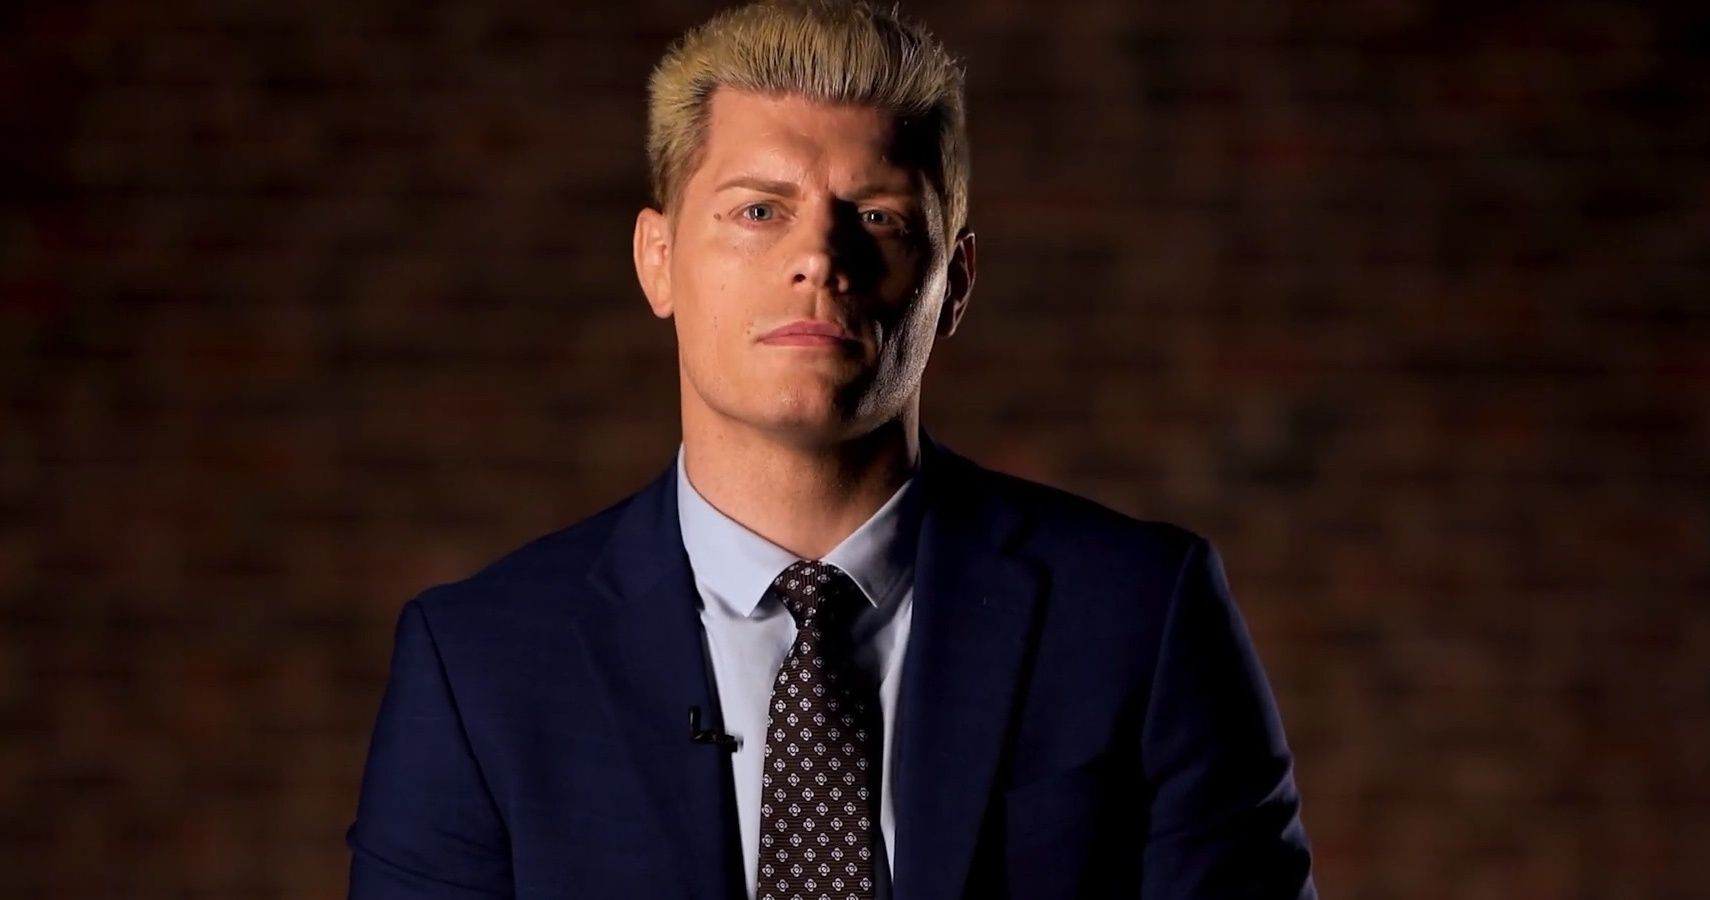 10 Backstage Stories About Cody Rhodes We Can't Believe